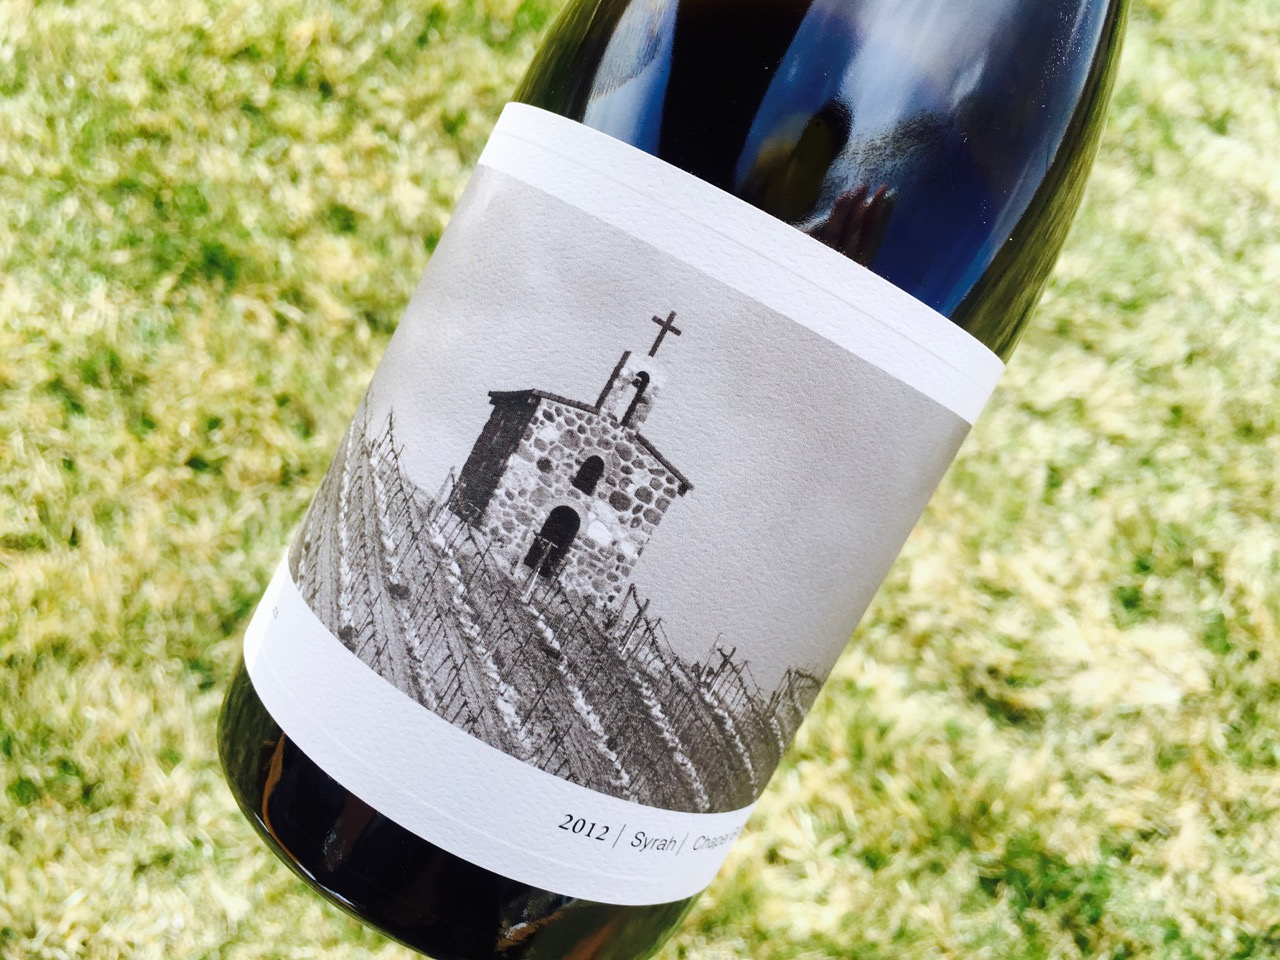 2012 Owen Roe Syrah Red Willow Vineyard Chapel Block Yakima Valley